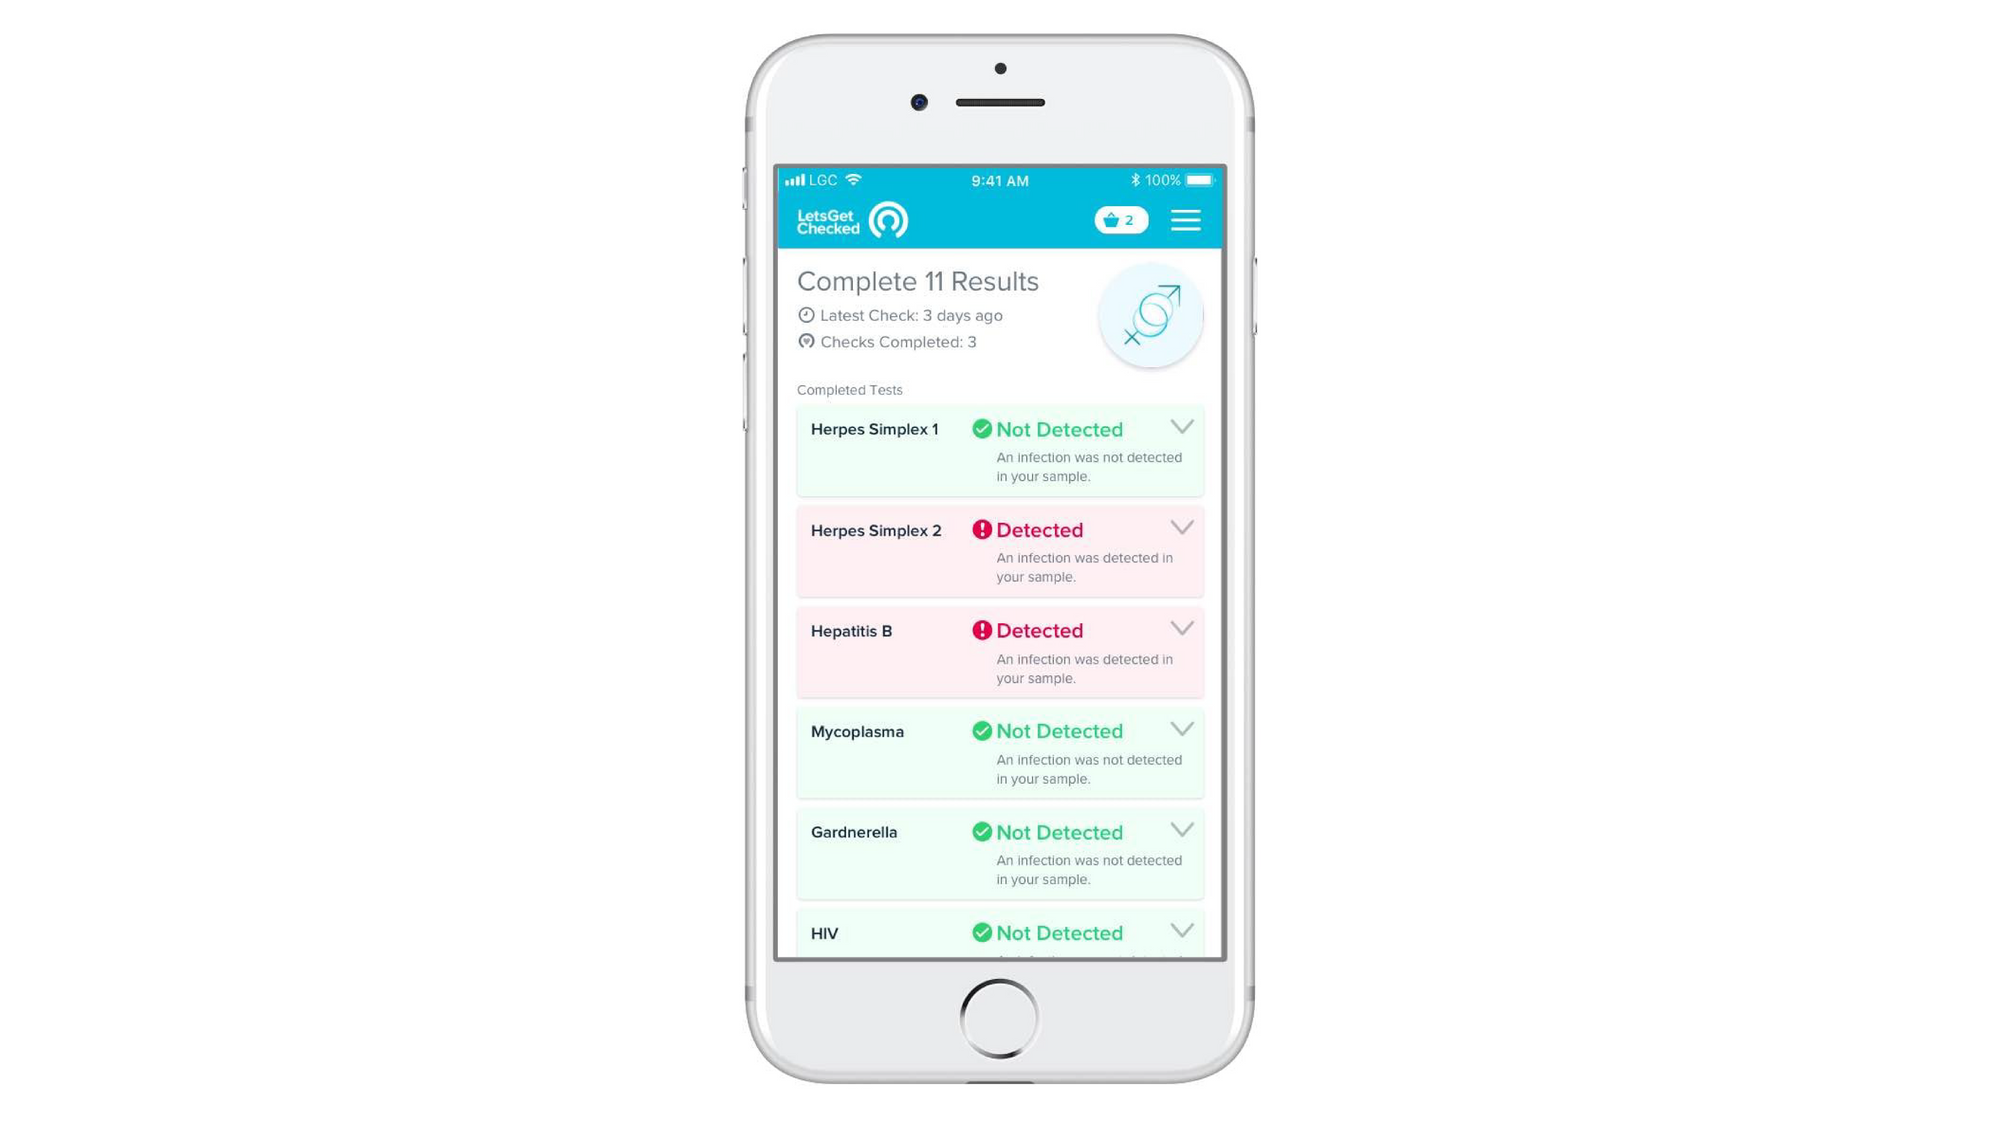 LetsGetChecked-Sexual-Health-Results-On-Mobile